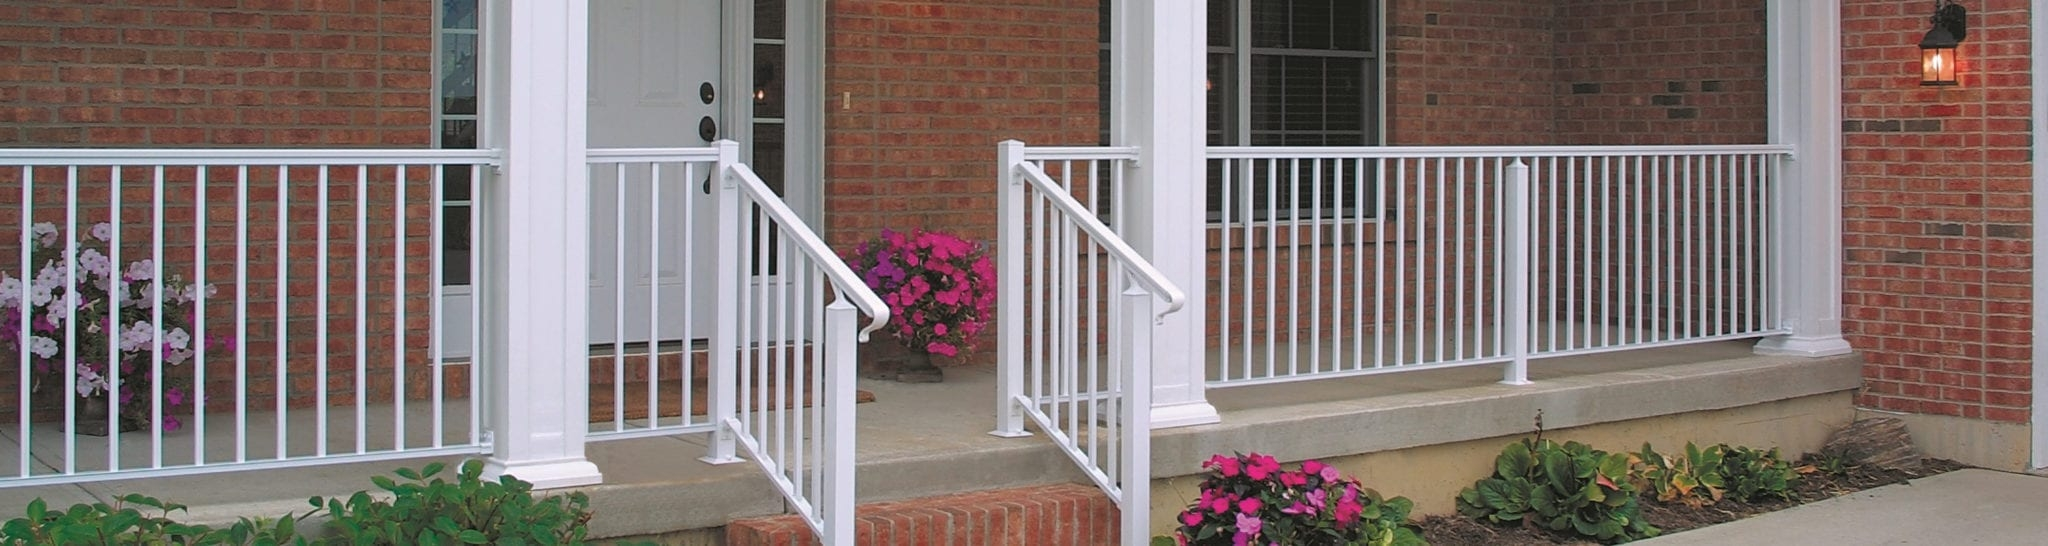 Residential Columns Railings Waukesha Milwaukee Wi | Safety Handrails For Outdoor Steps | Railing Kits | Simplified Building | Wrought Iron | Wood | Metal